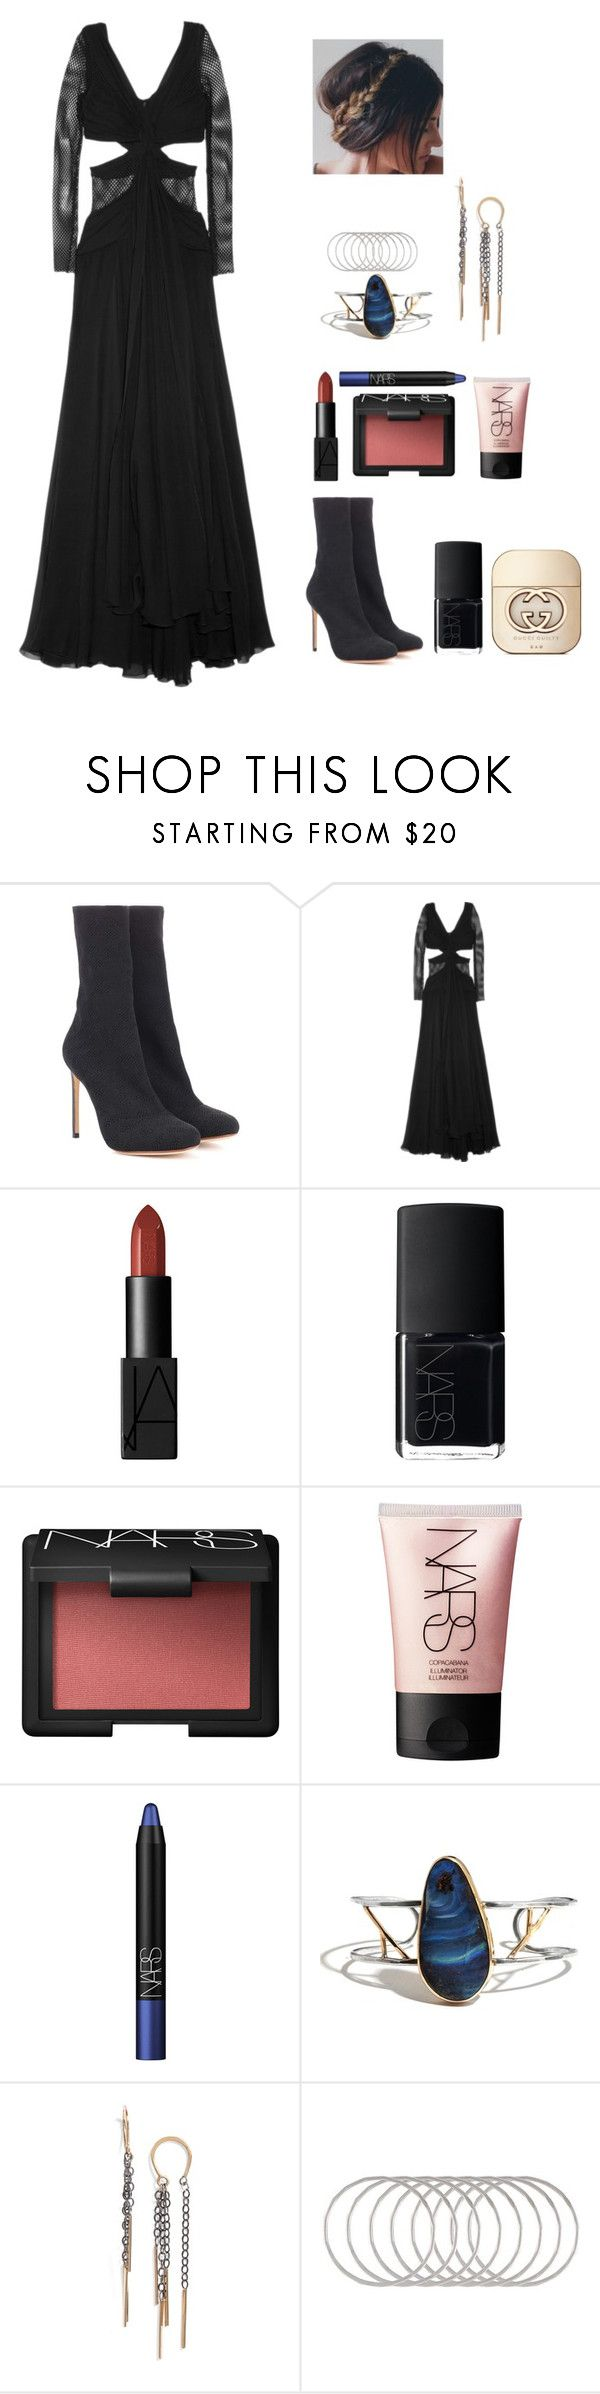 """""""Performing """"Gypsy"""" at #musicare 2018 for Fleetwood Mac (1/26)"""" by designing-myworld ❤ liked on Polyvore featuring Francesco Russo, Jay Ahr, NARS Cosmetics, Melissa Joy Manning and Gucci"""